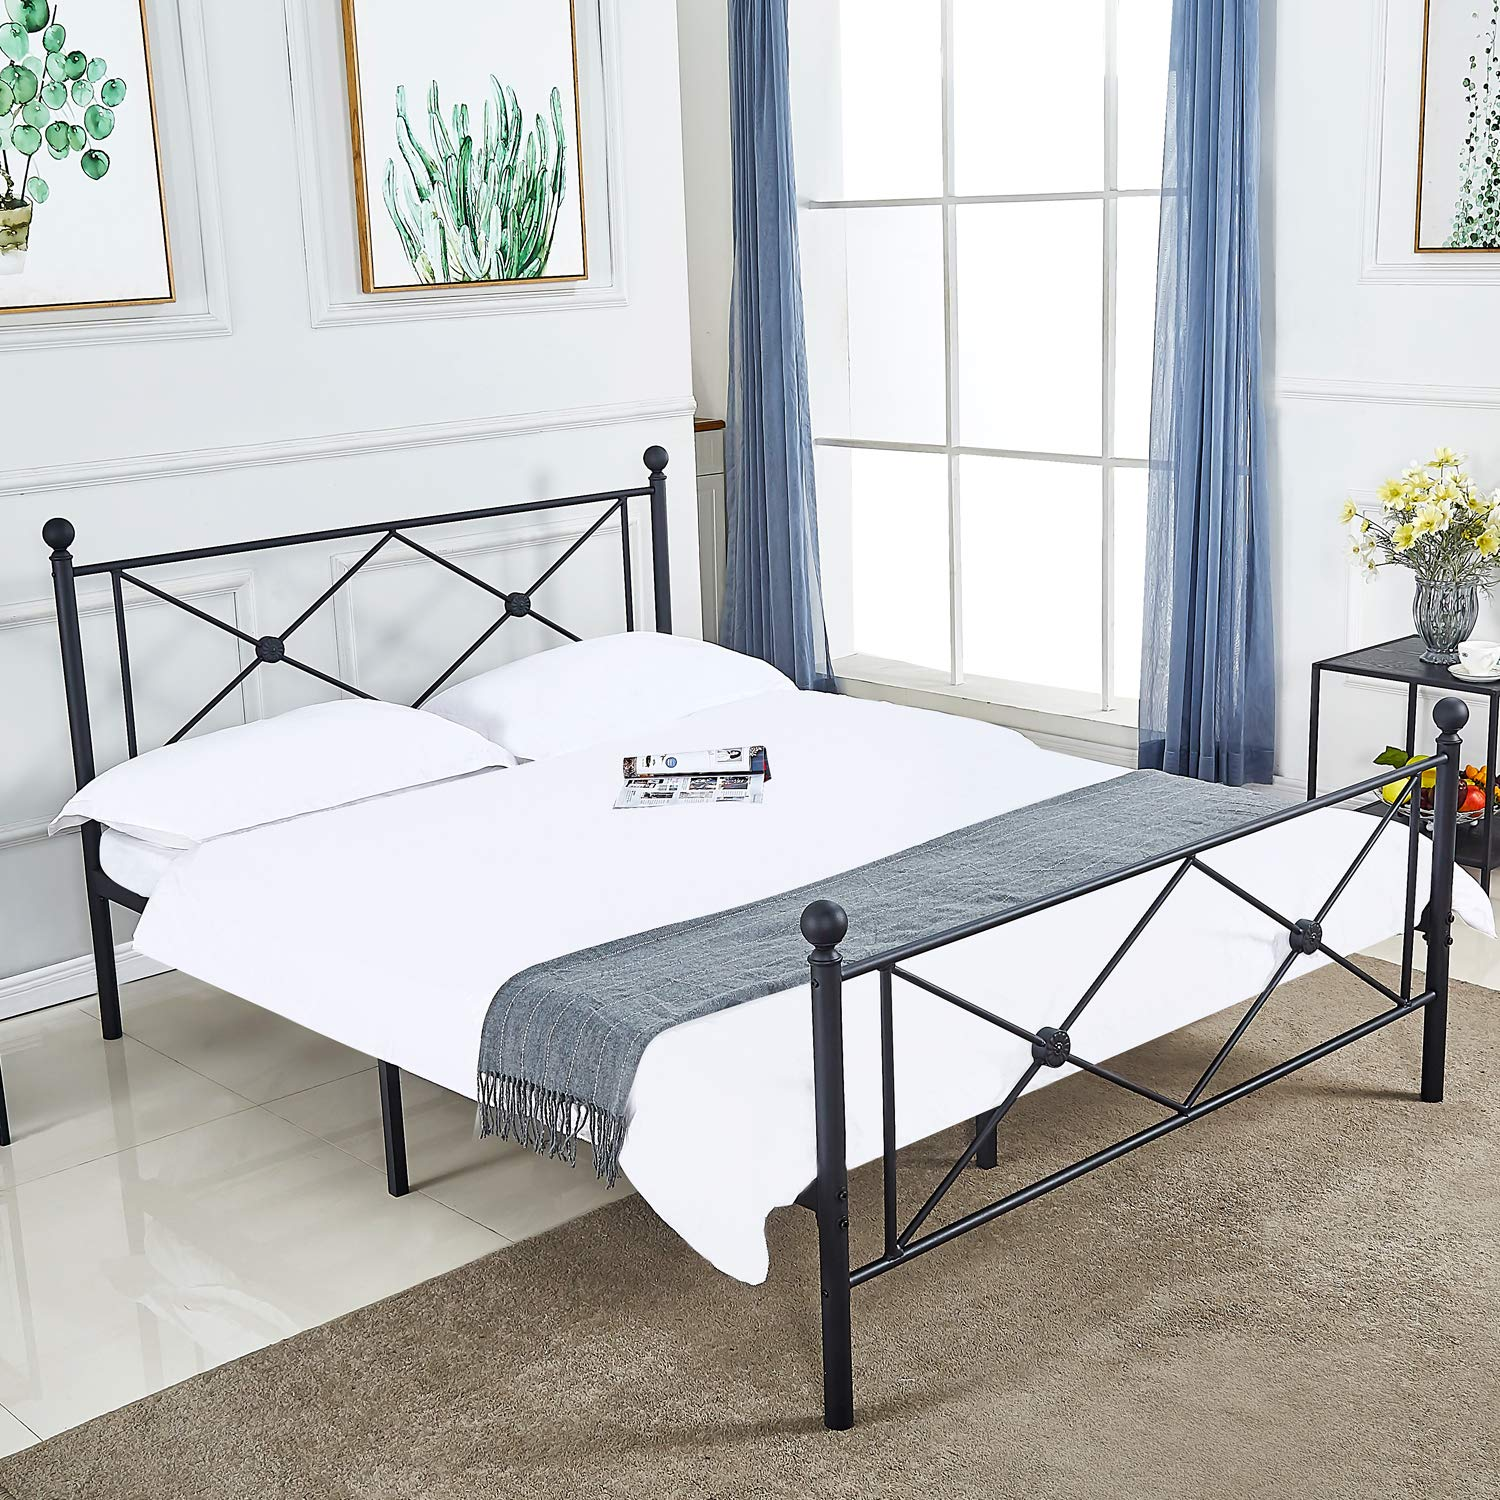 DIKAPA Sturdy Metal Bed Frame,Platform Mattress Foundation Box Spring Replacement with Victorian Style Headboard and Footboard Full